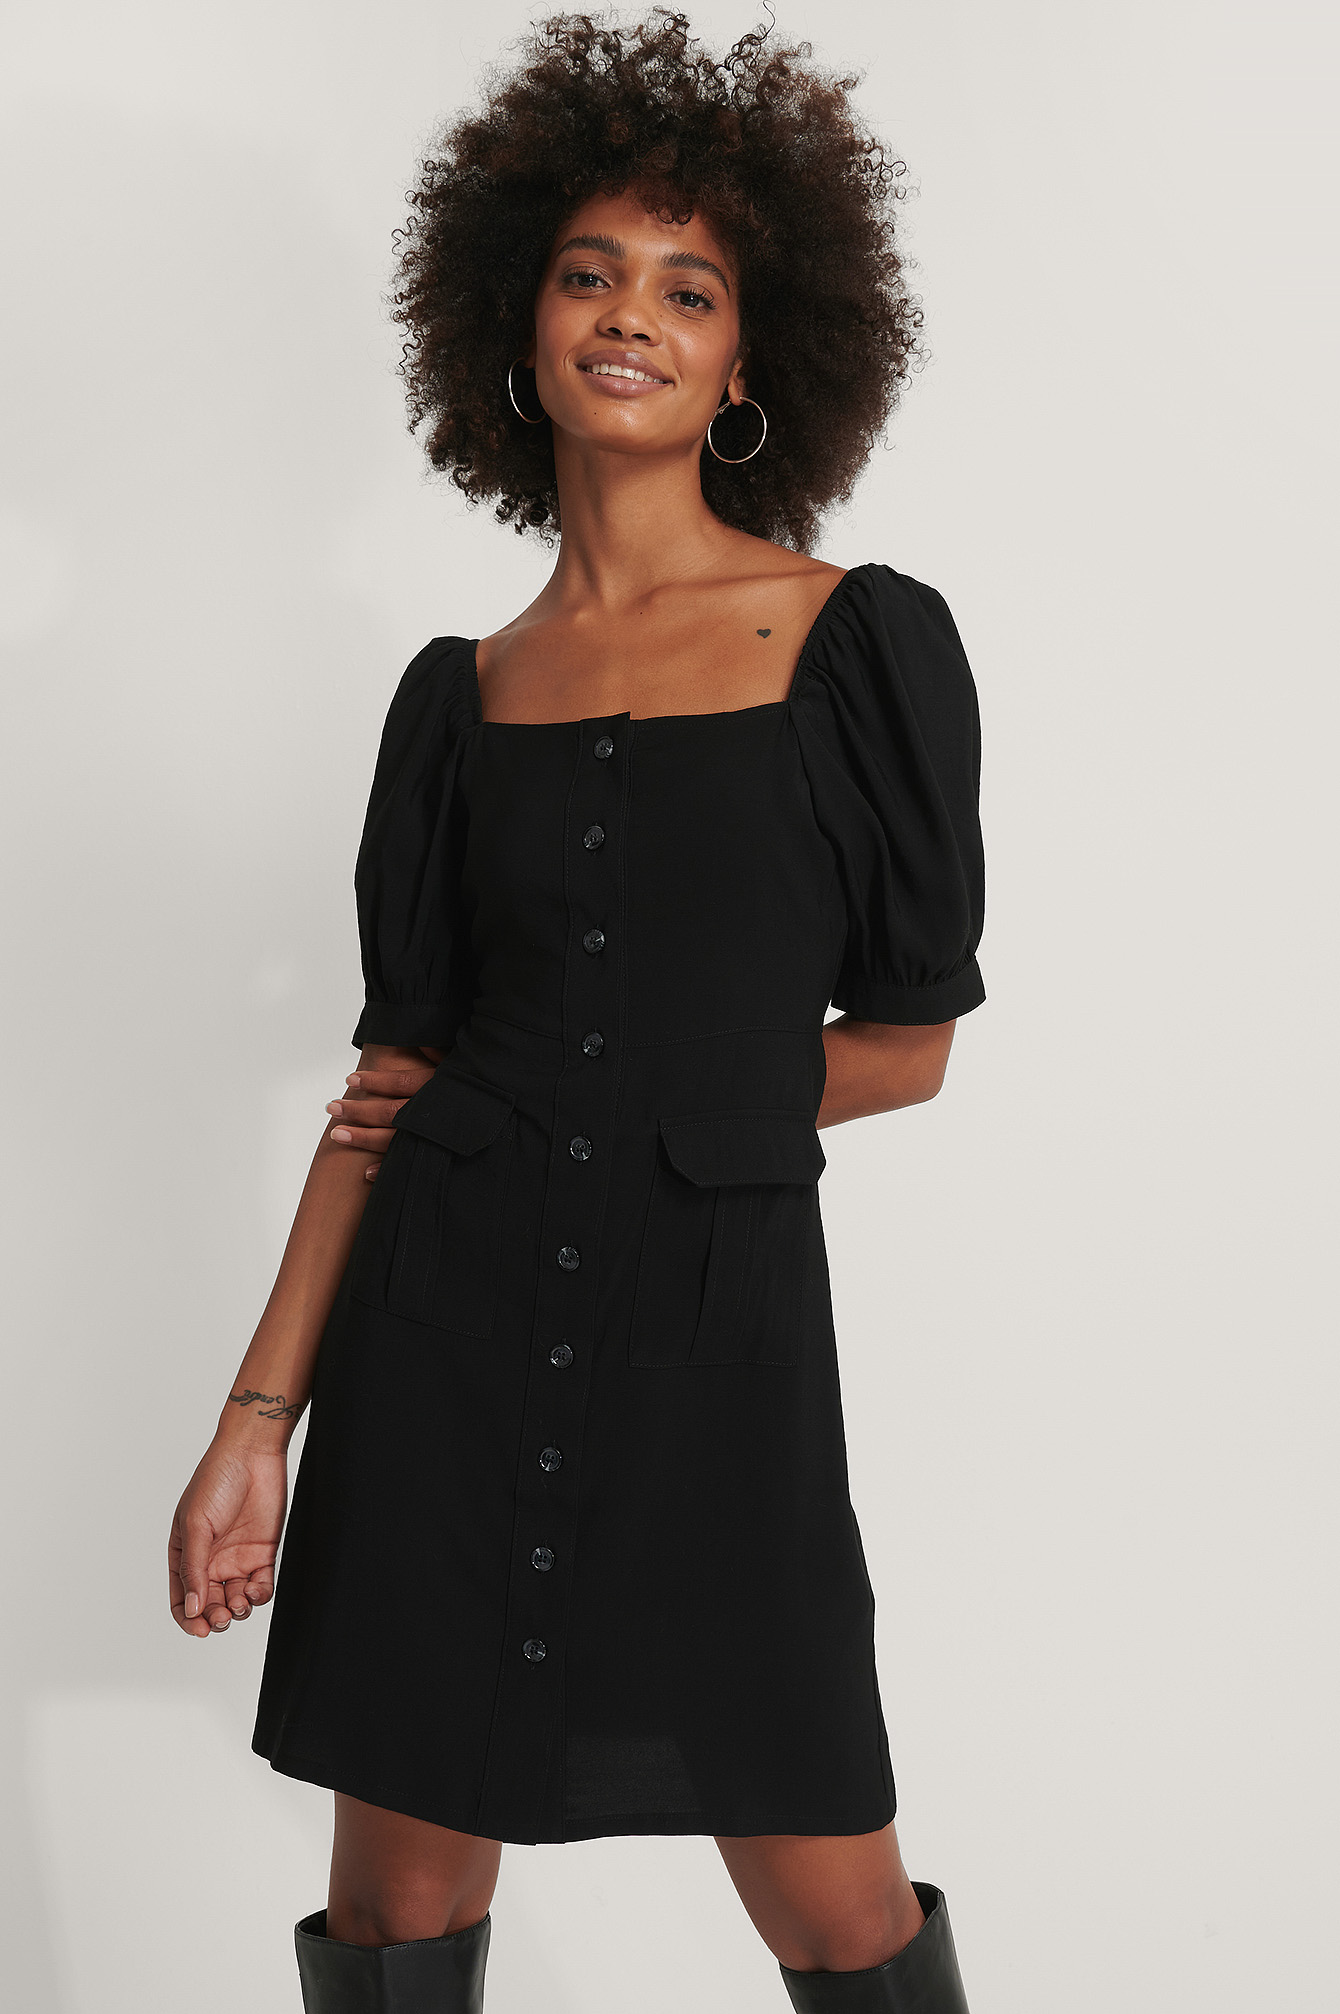 Black Button Up Short Puff Sleeve Dress